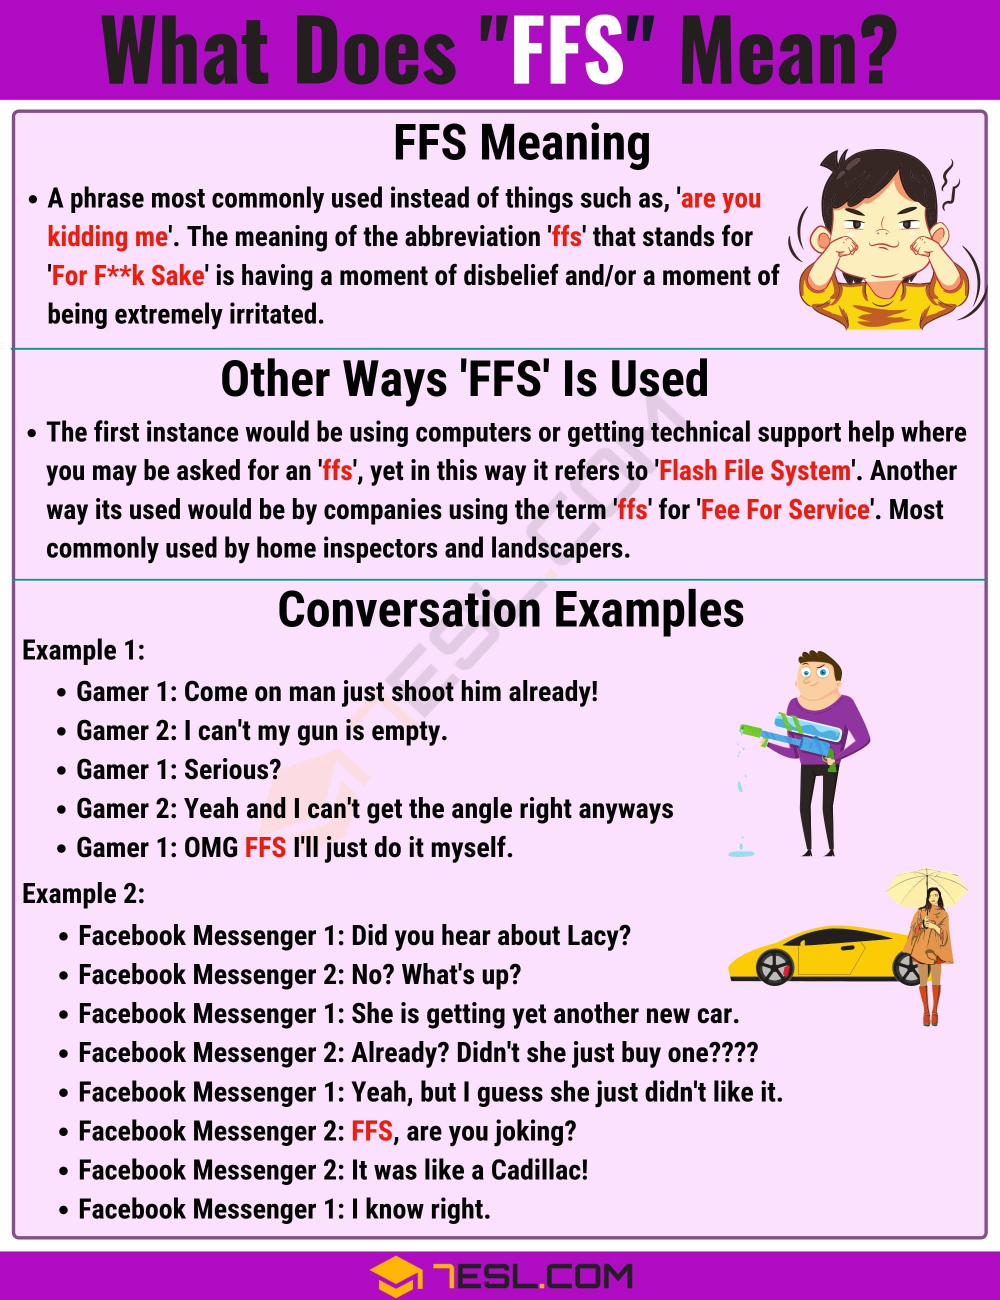 Ffs Meaning What Does Ffs Mean And Stand For 7esl Learn English Words Meant To Be Text Abbreviations